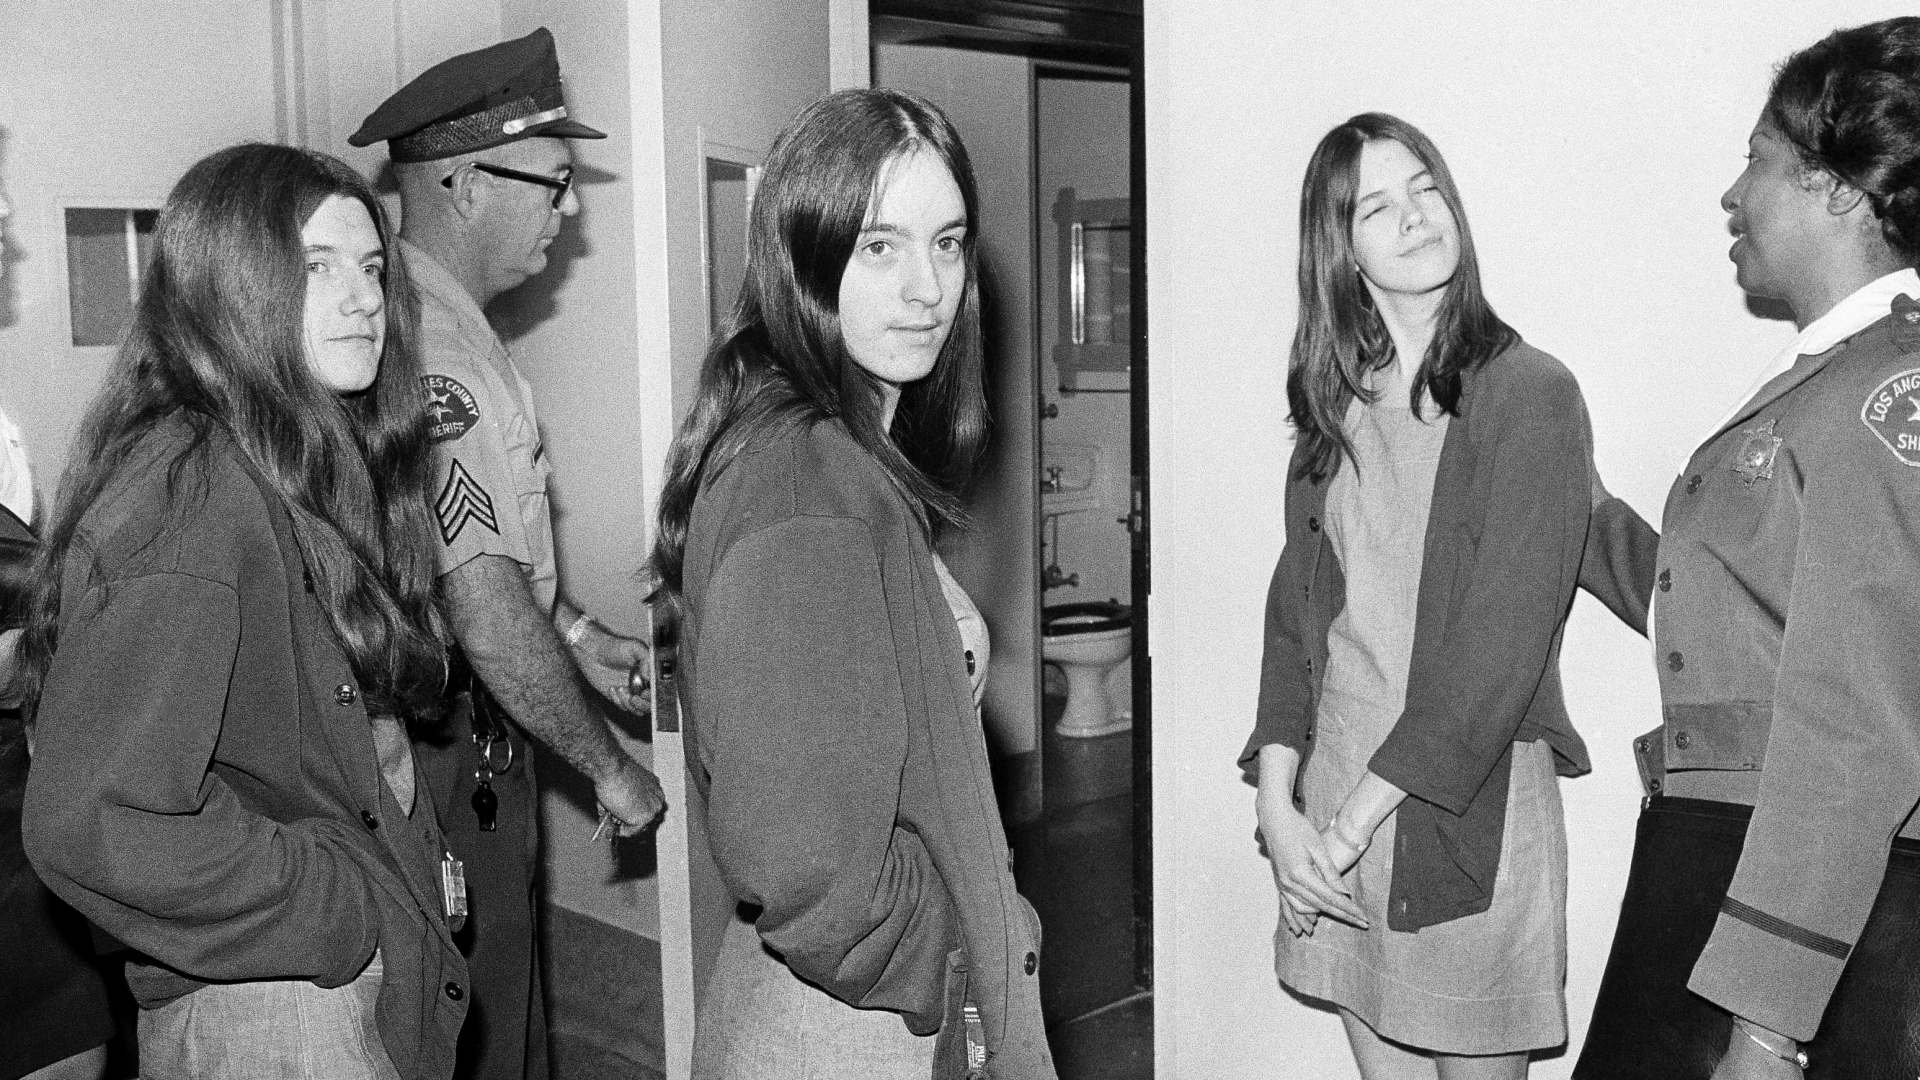 "Leslie Van Houten, Susan Atkins and Patricia Krenwinkel, co-defendants with Charles Manson in the Sharon Tate murder trial, walking toward a Los Angeles courtroom to listen to further cross-examination of Linda Kasabian, the state's principal witness against them. Willingly joining Manson's ""family,"" these women were manipulated by Manson into carrying out his murderous orders. Sometimes, they even referred to themselves as a sorority called, ""Charlie's Girls."" (Credit: Wally Fong/AP Photo)"